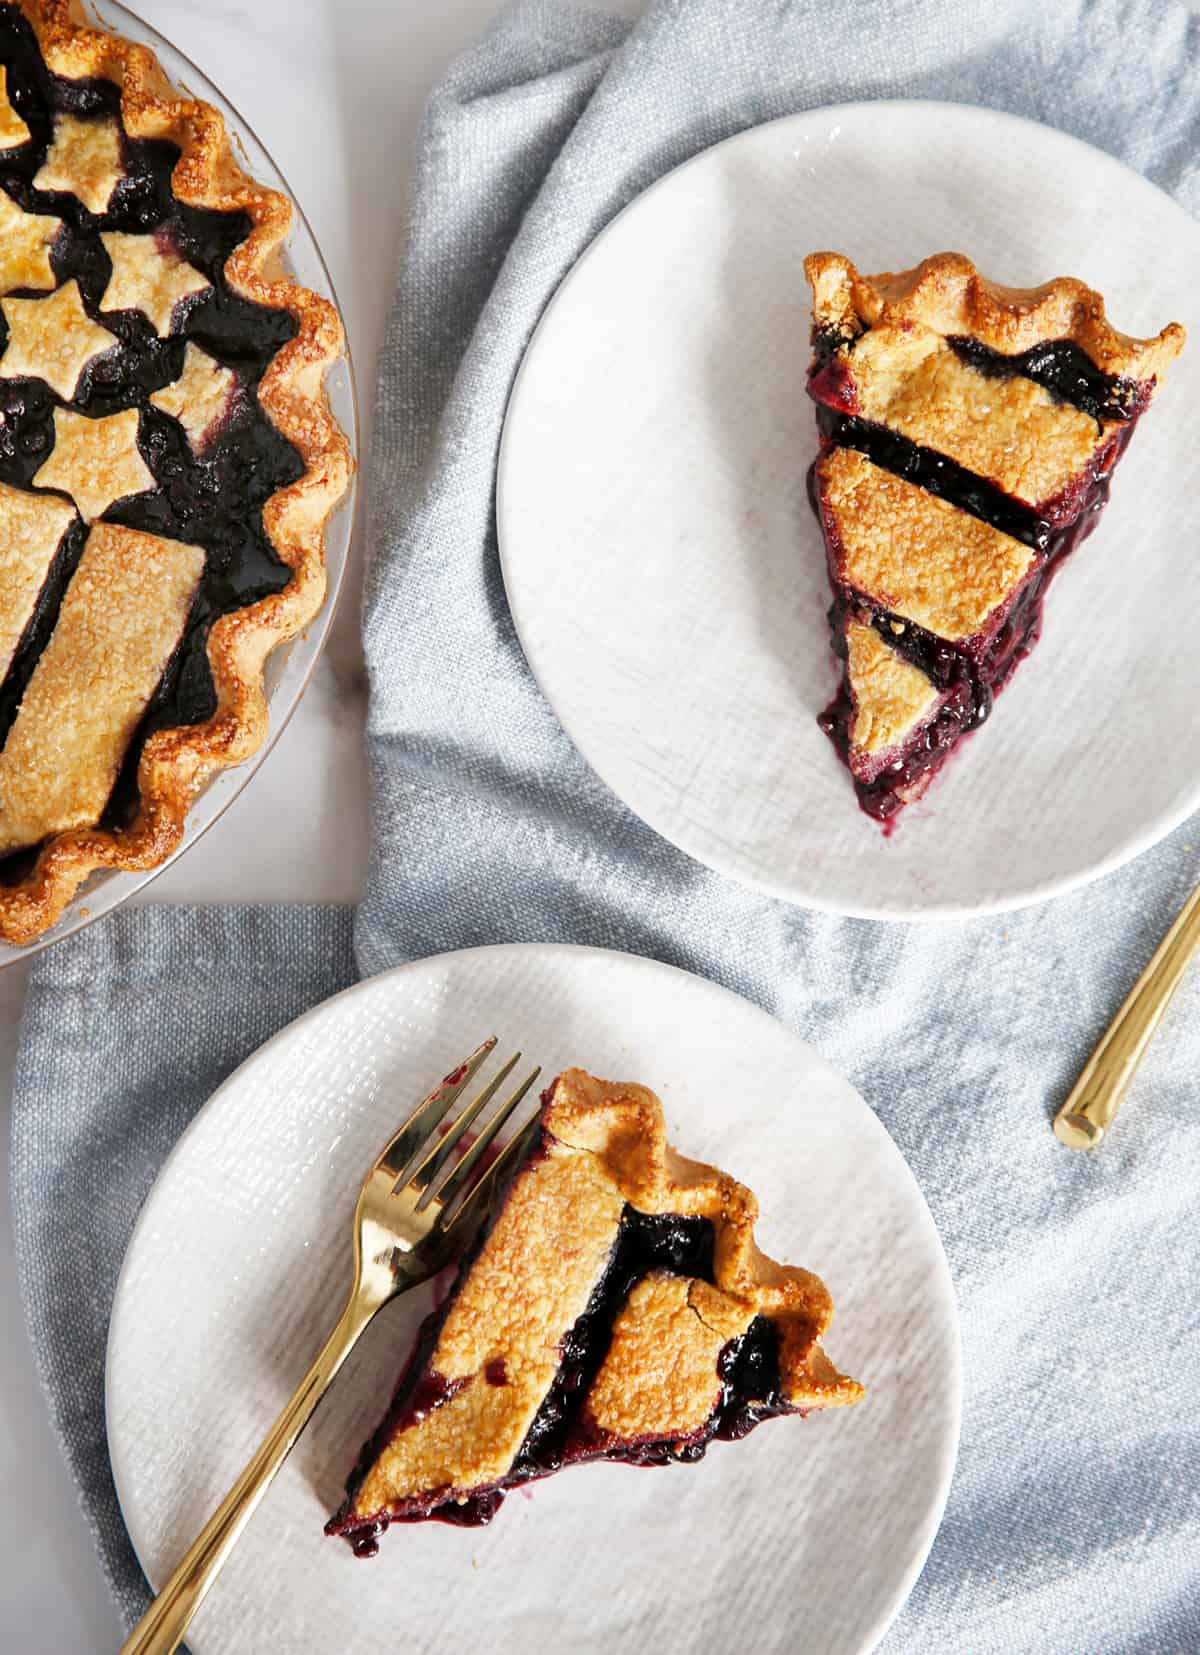 Slices of gluten free blueberry pie